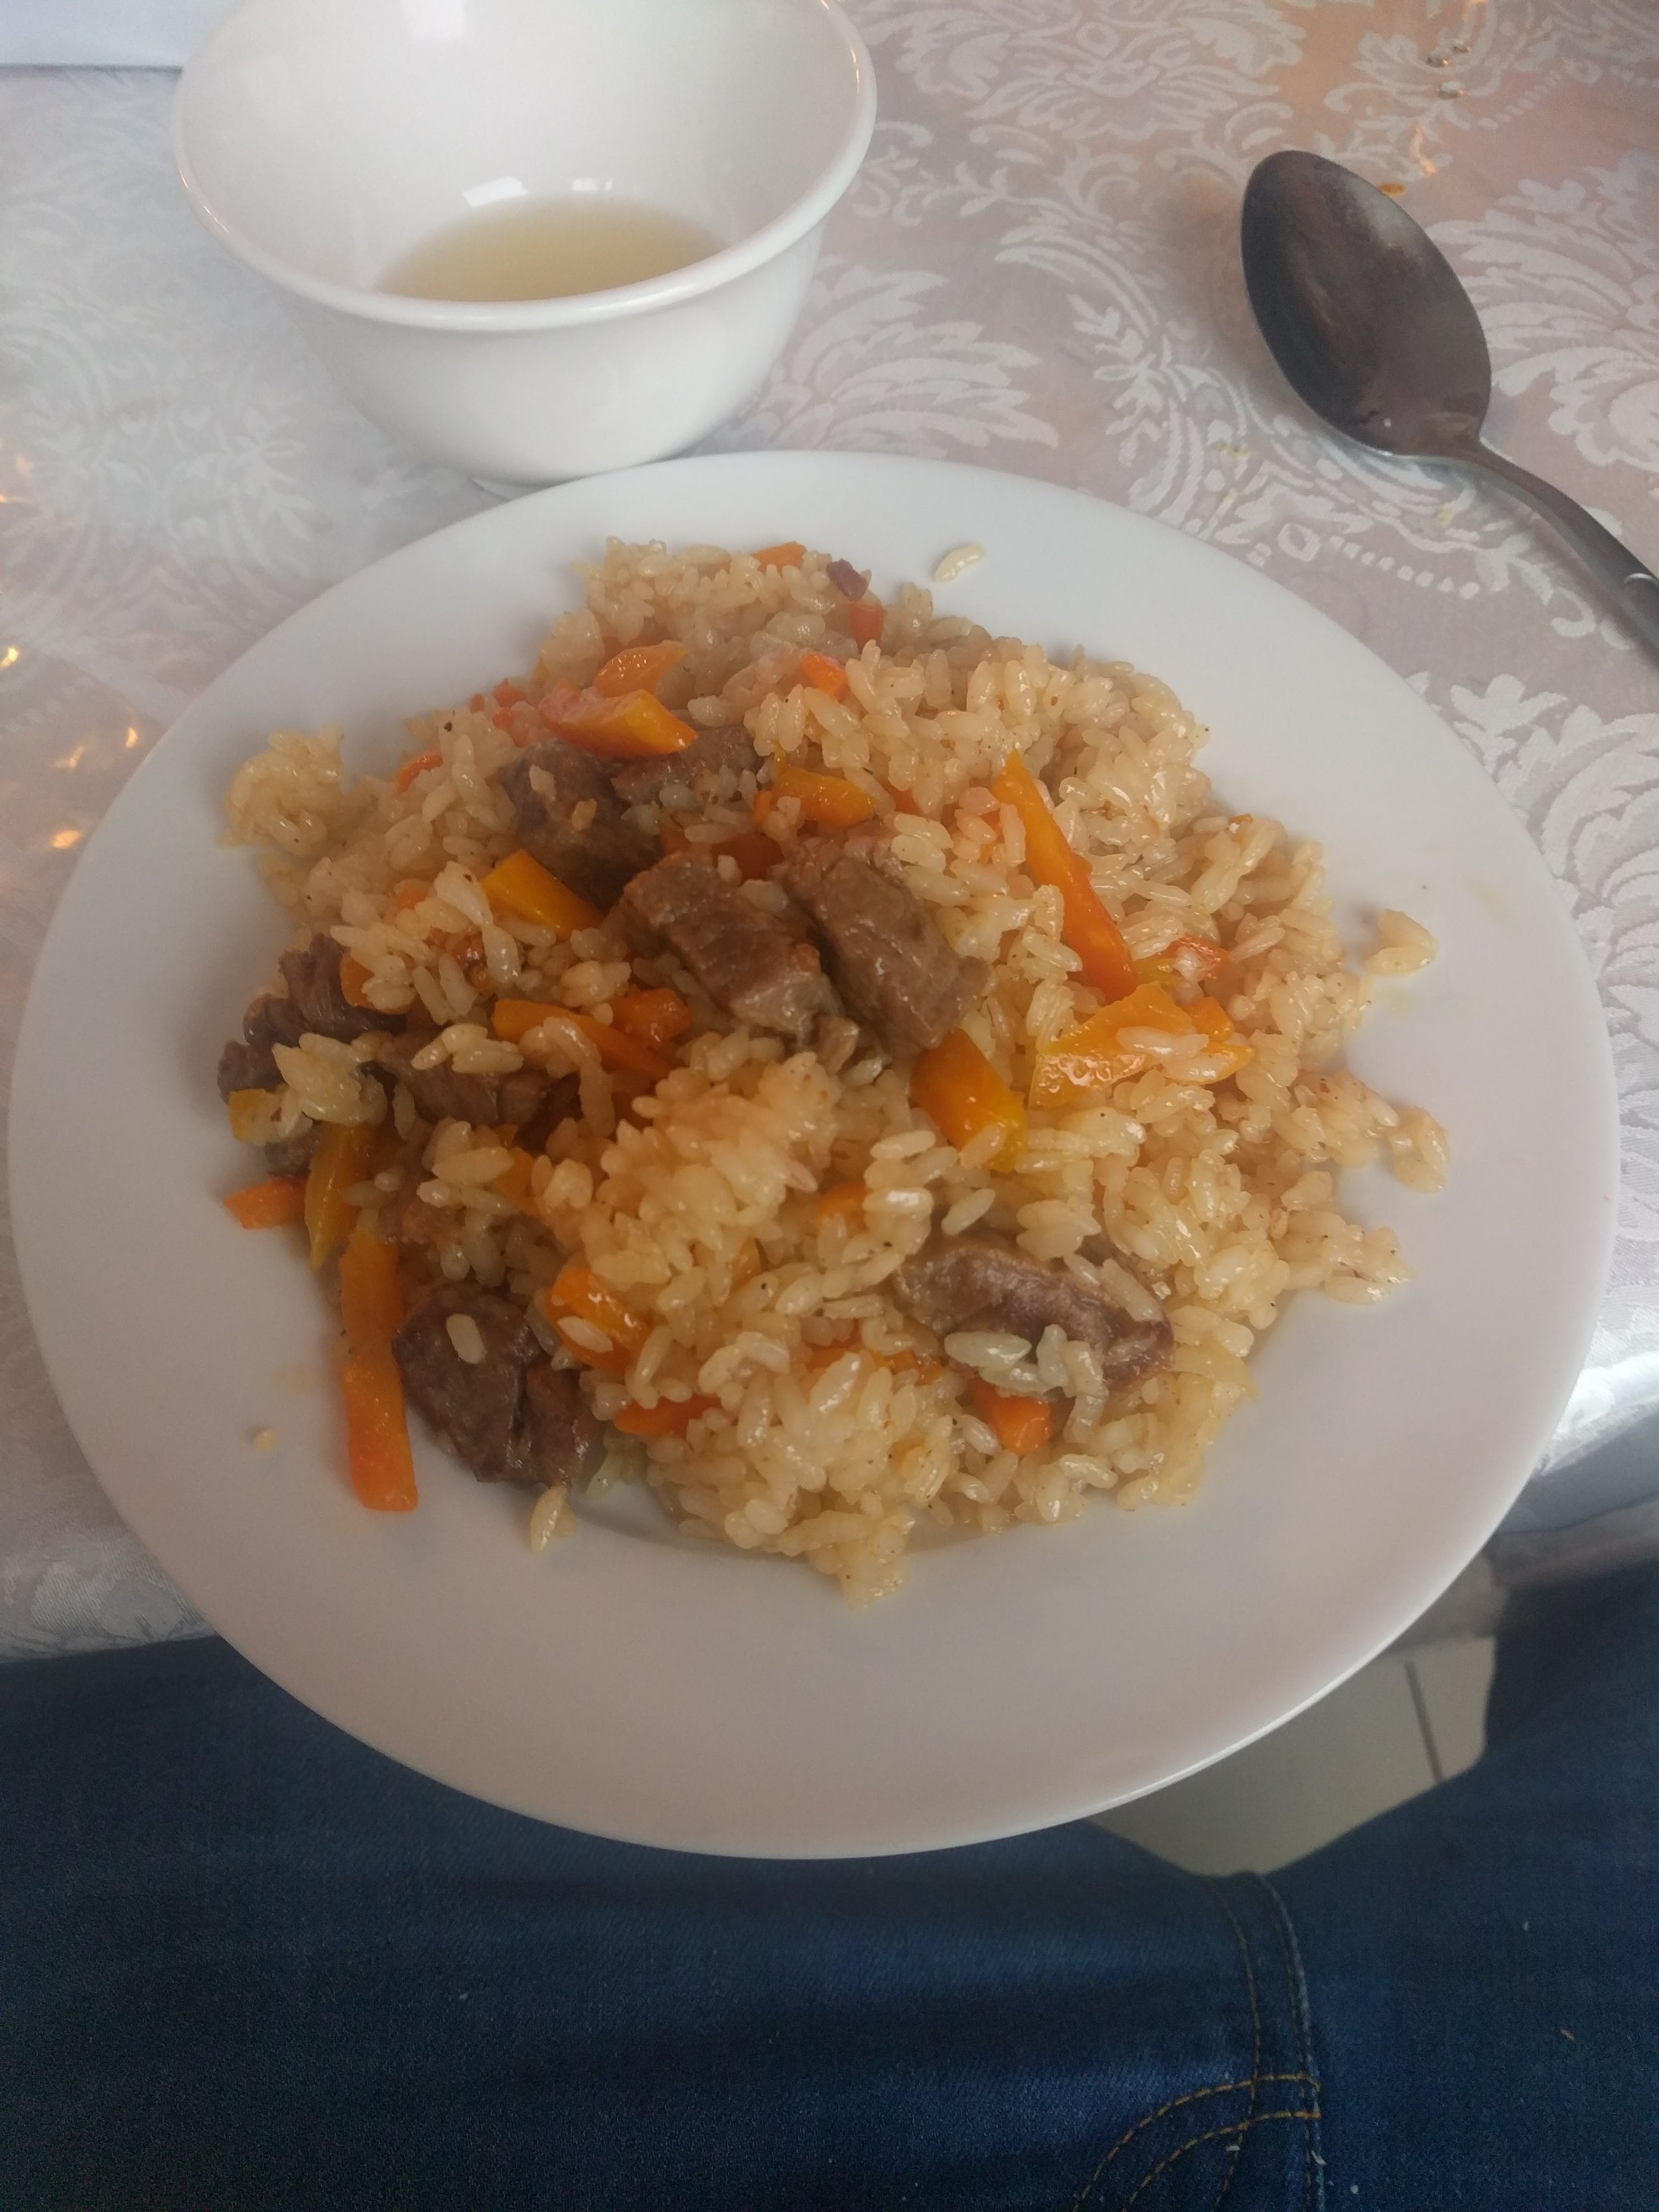 Plov! Beef, rice, carrots and fat. Perfect for climbing a mountain. This was lunch at a lodge before we headed up.